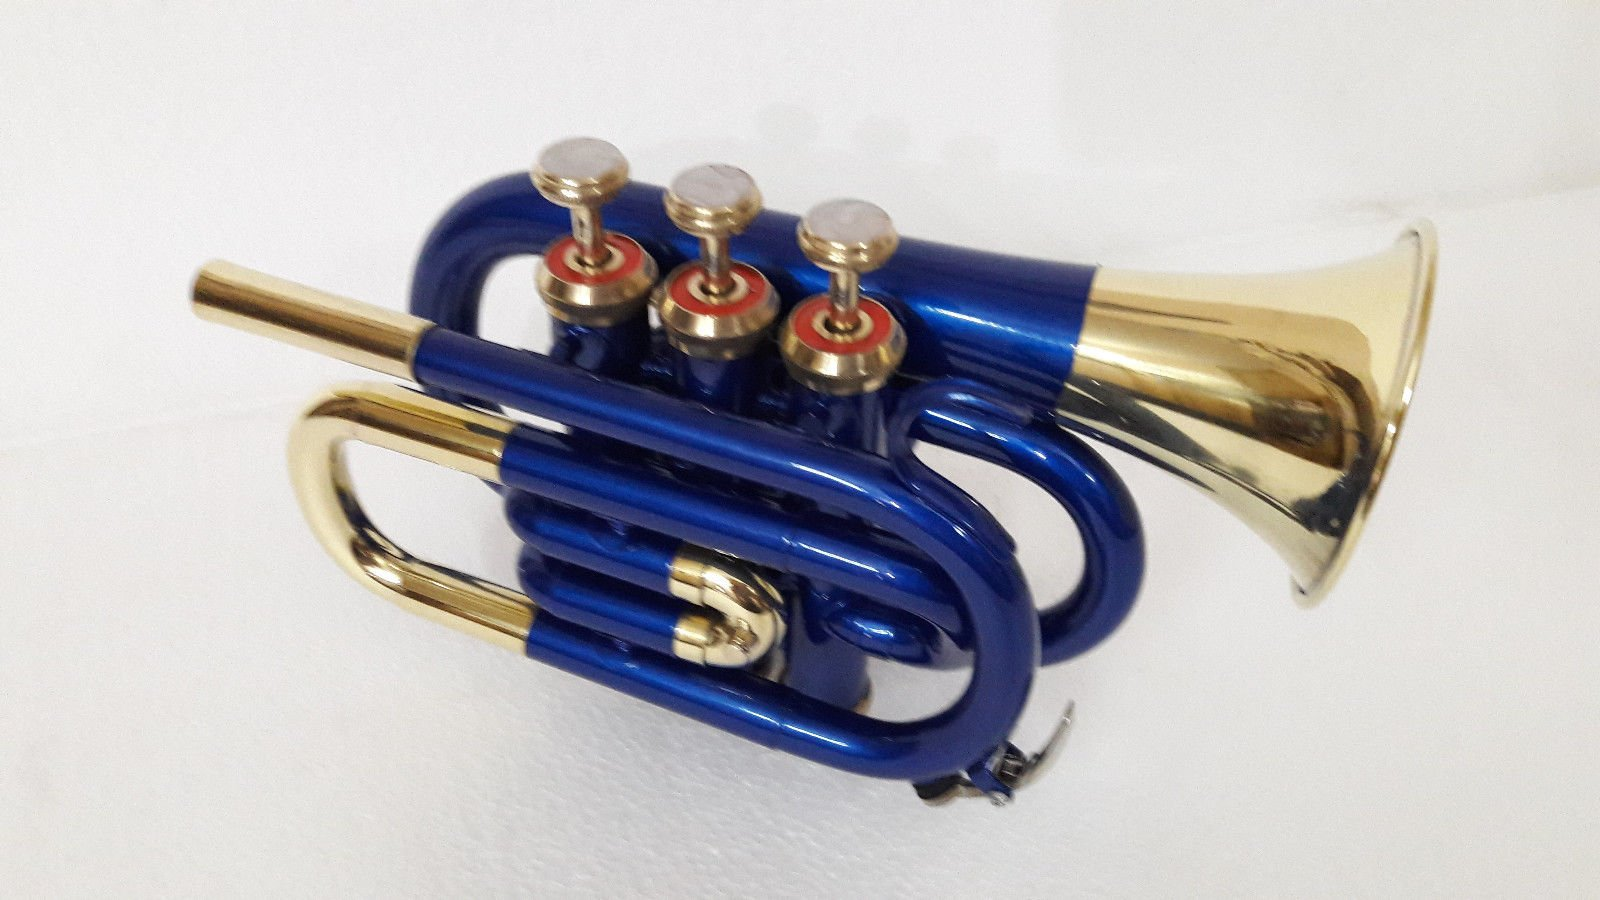 SUMMER VACATION SALE NEW BLUE BRASS FINISH Bb FLAT POCKET TRUMPET+FREE CASE+M/P by SAI MUSICAL (Image #1)